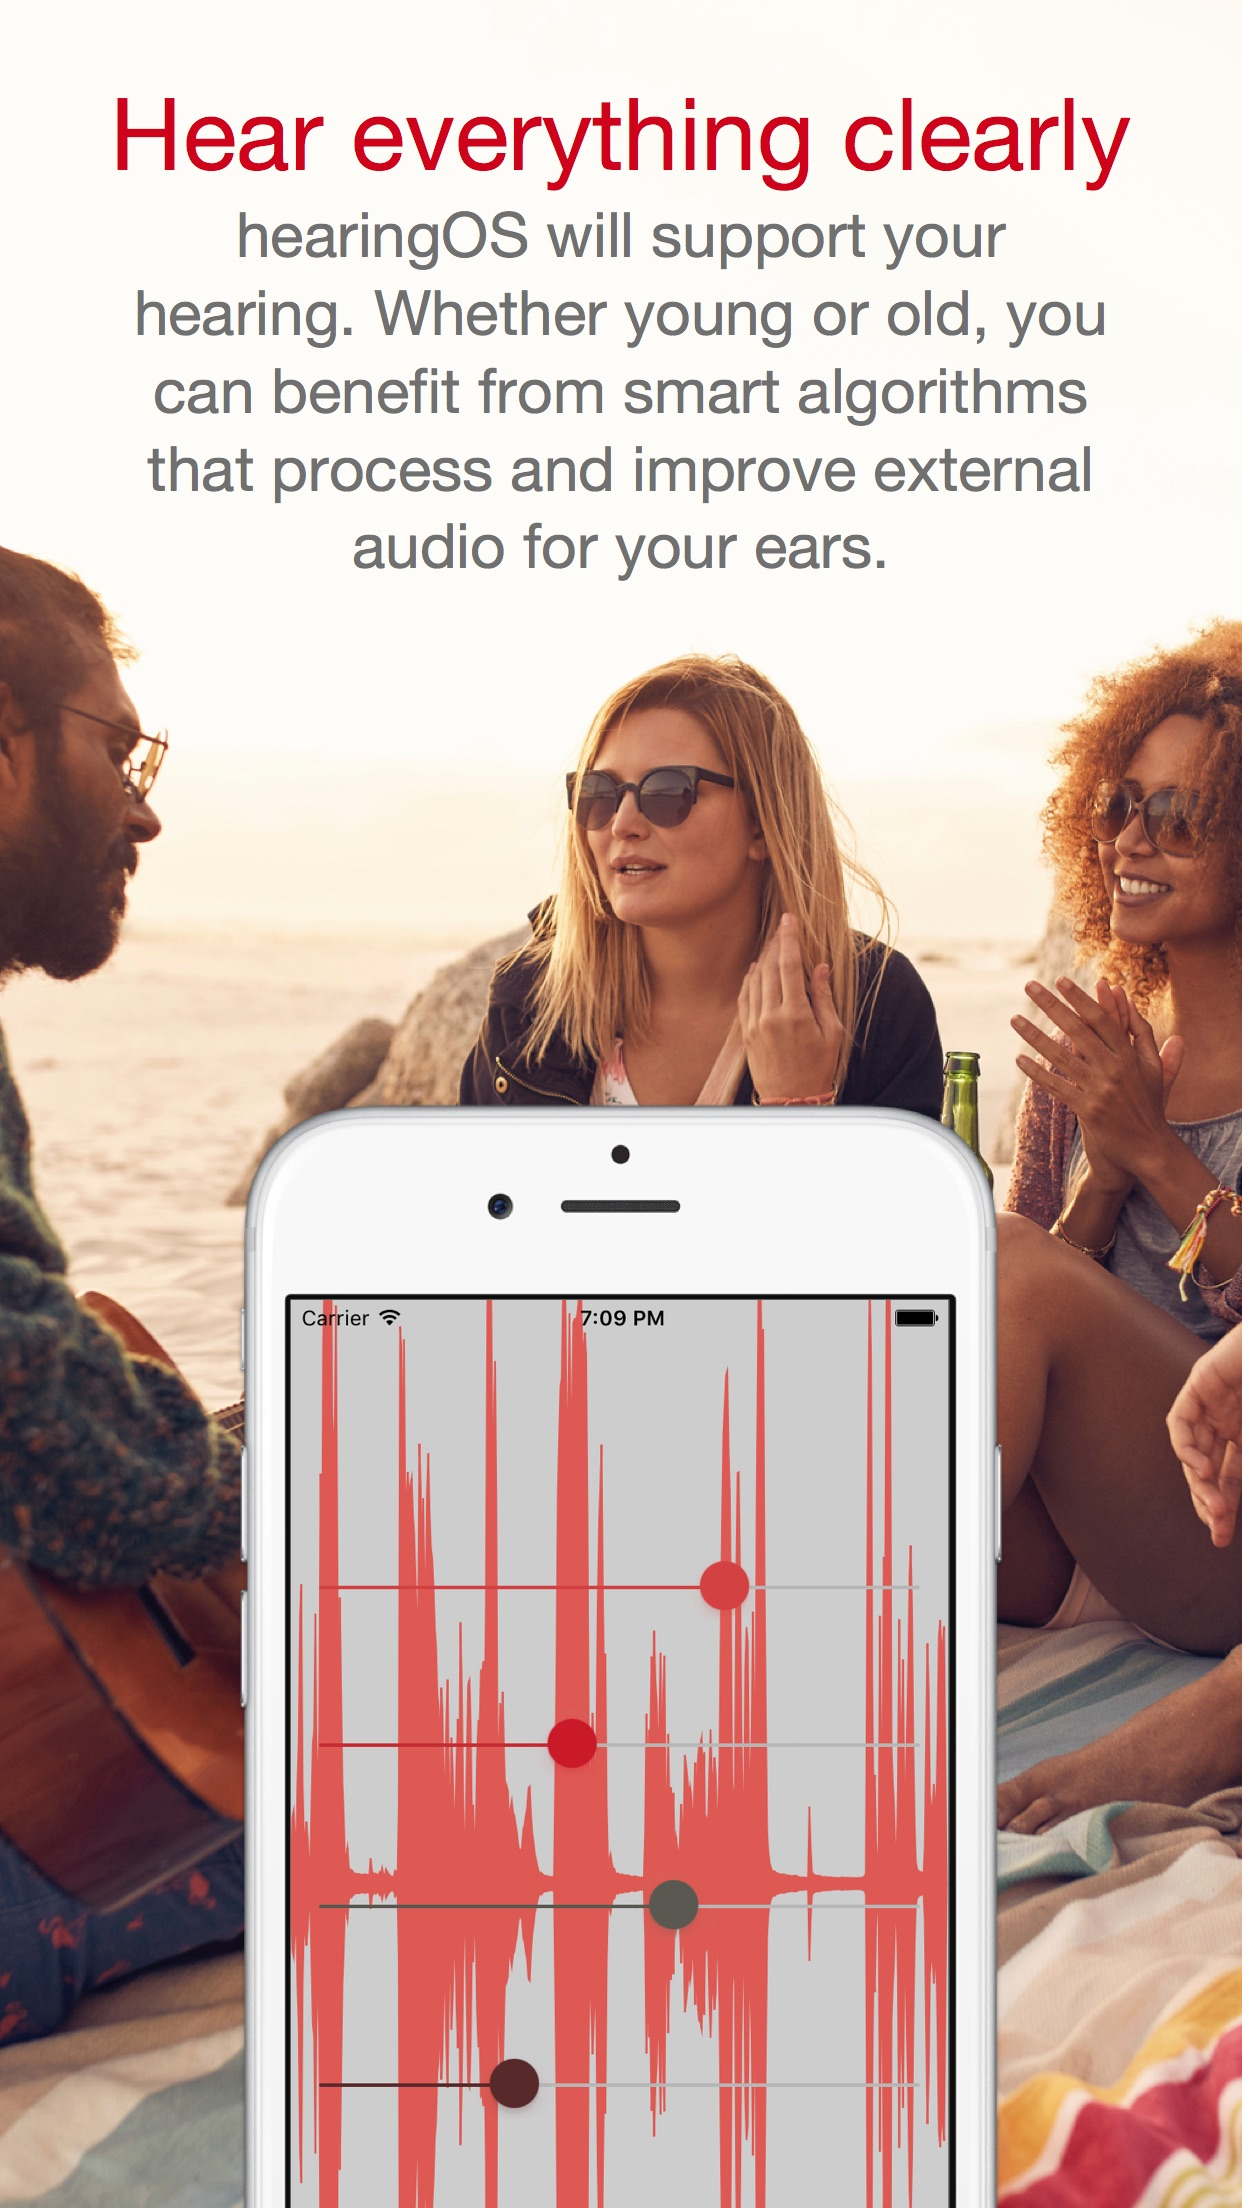 hearingOS - Hearing Aid App Screenshot